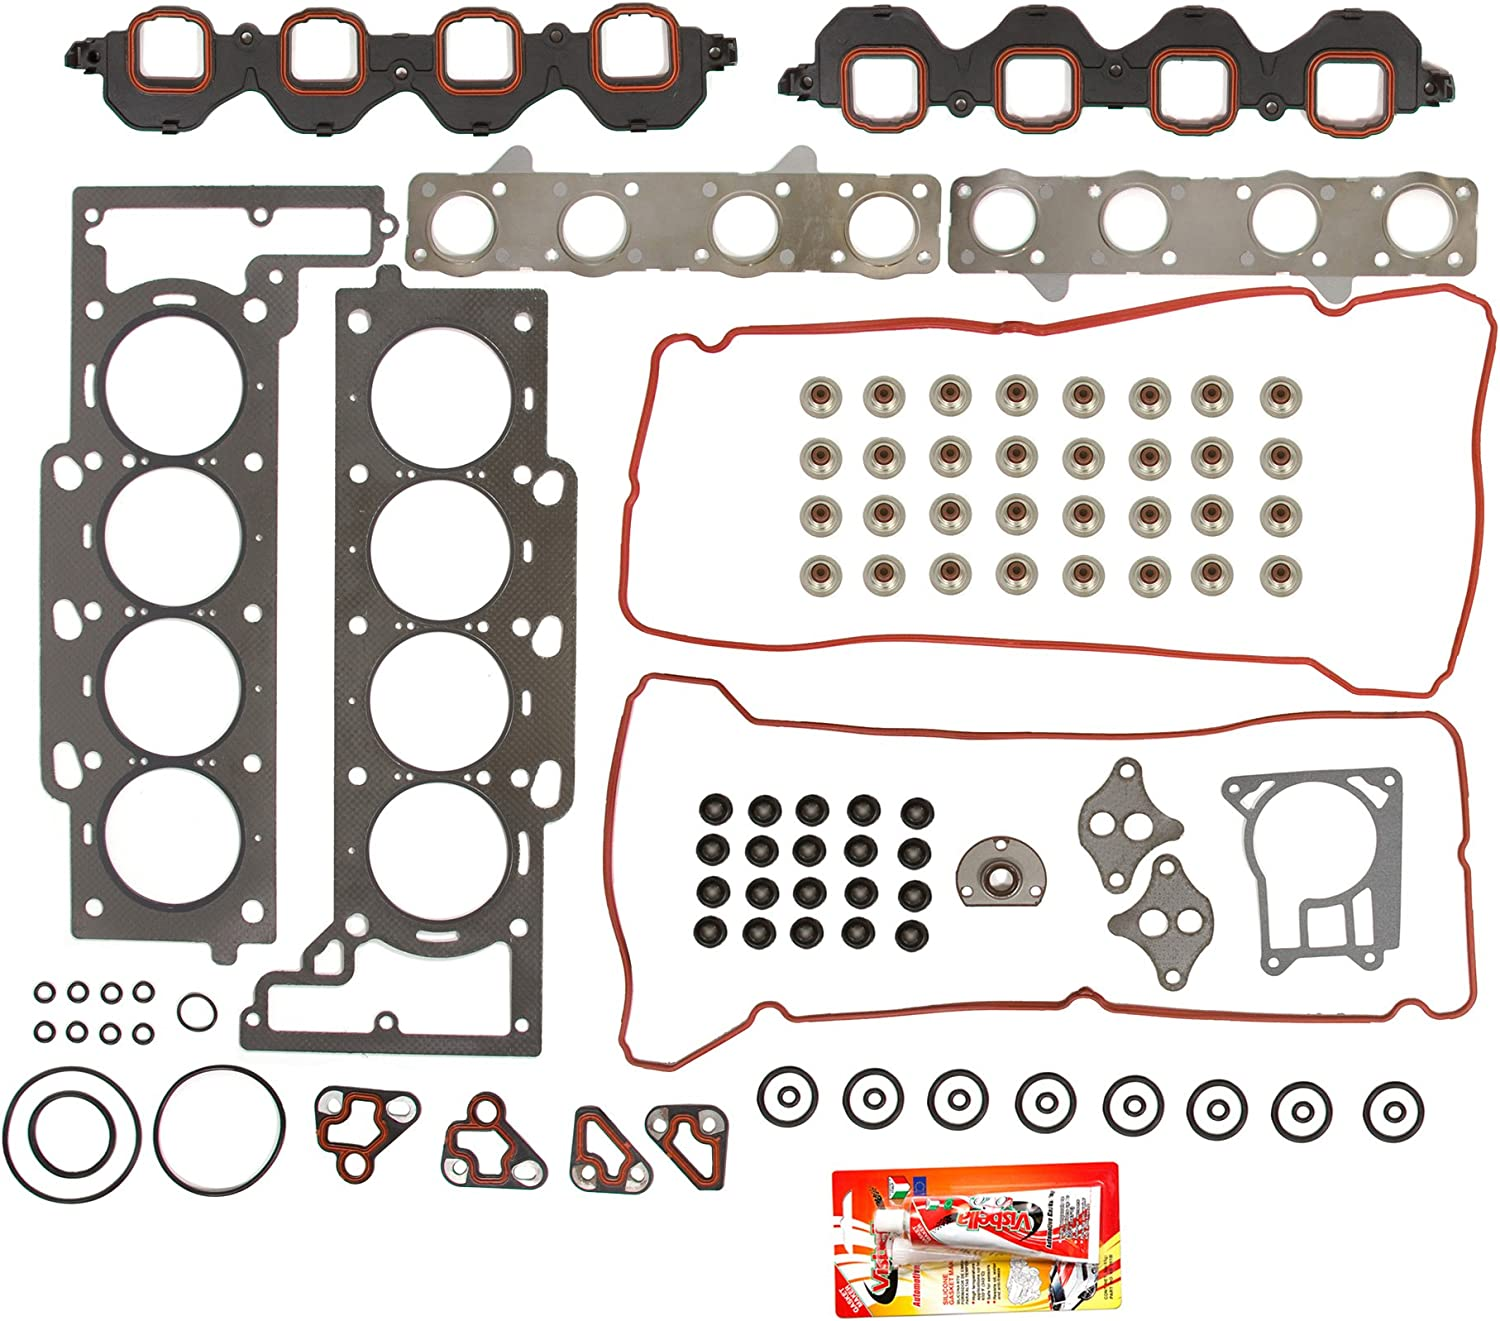 amazon com compatible with 95 99 4 6 cadillac deville el dorado seville vin code y 9 head gasket set automotive amazon com